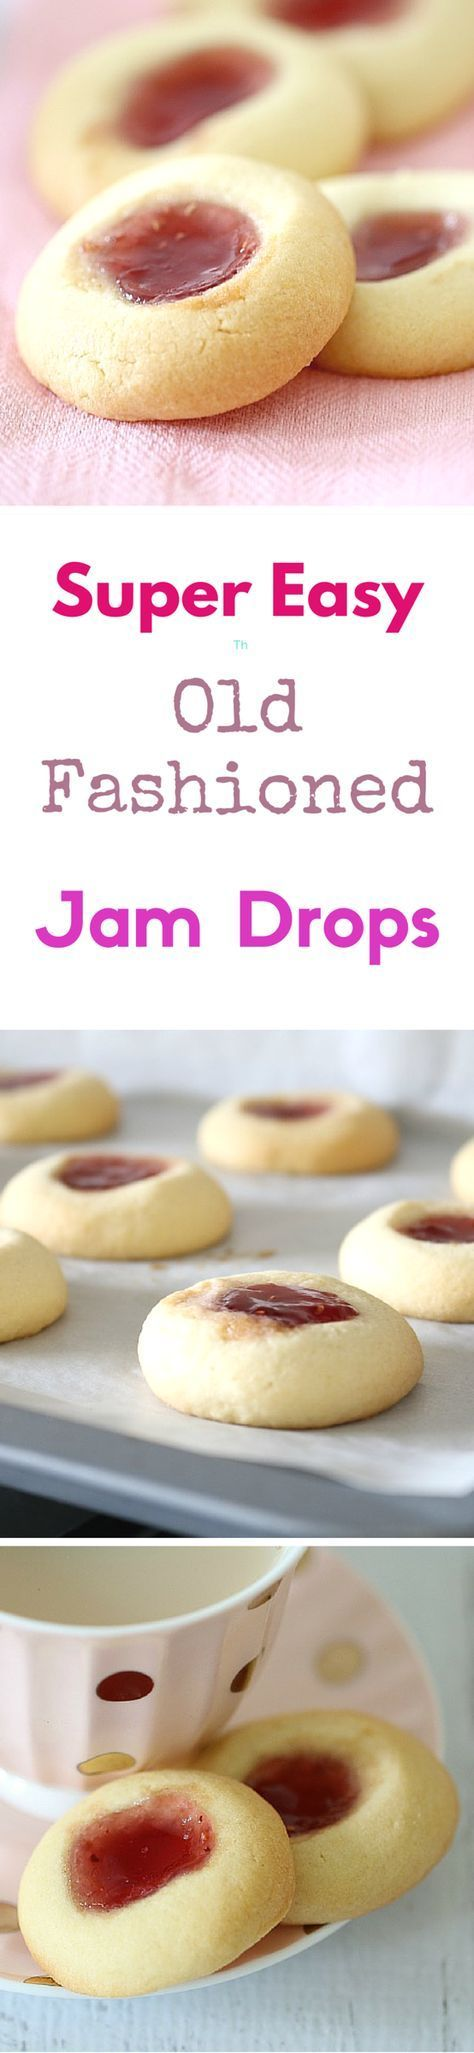 I always used to make these jam drops with my mum when I was little. They're the yummiest things ever!